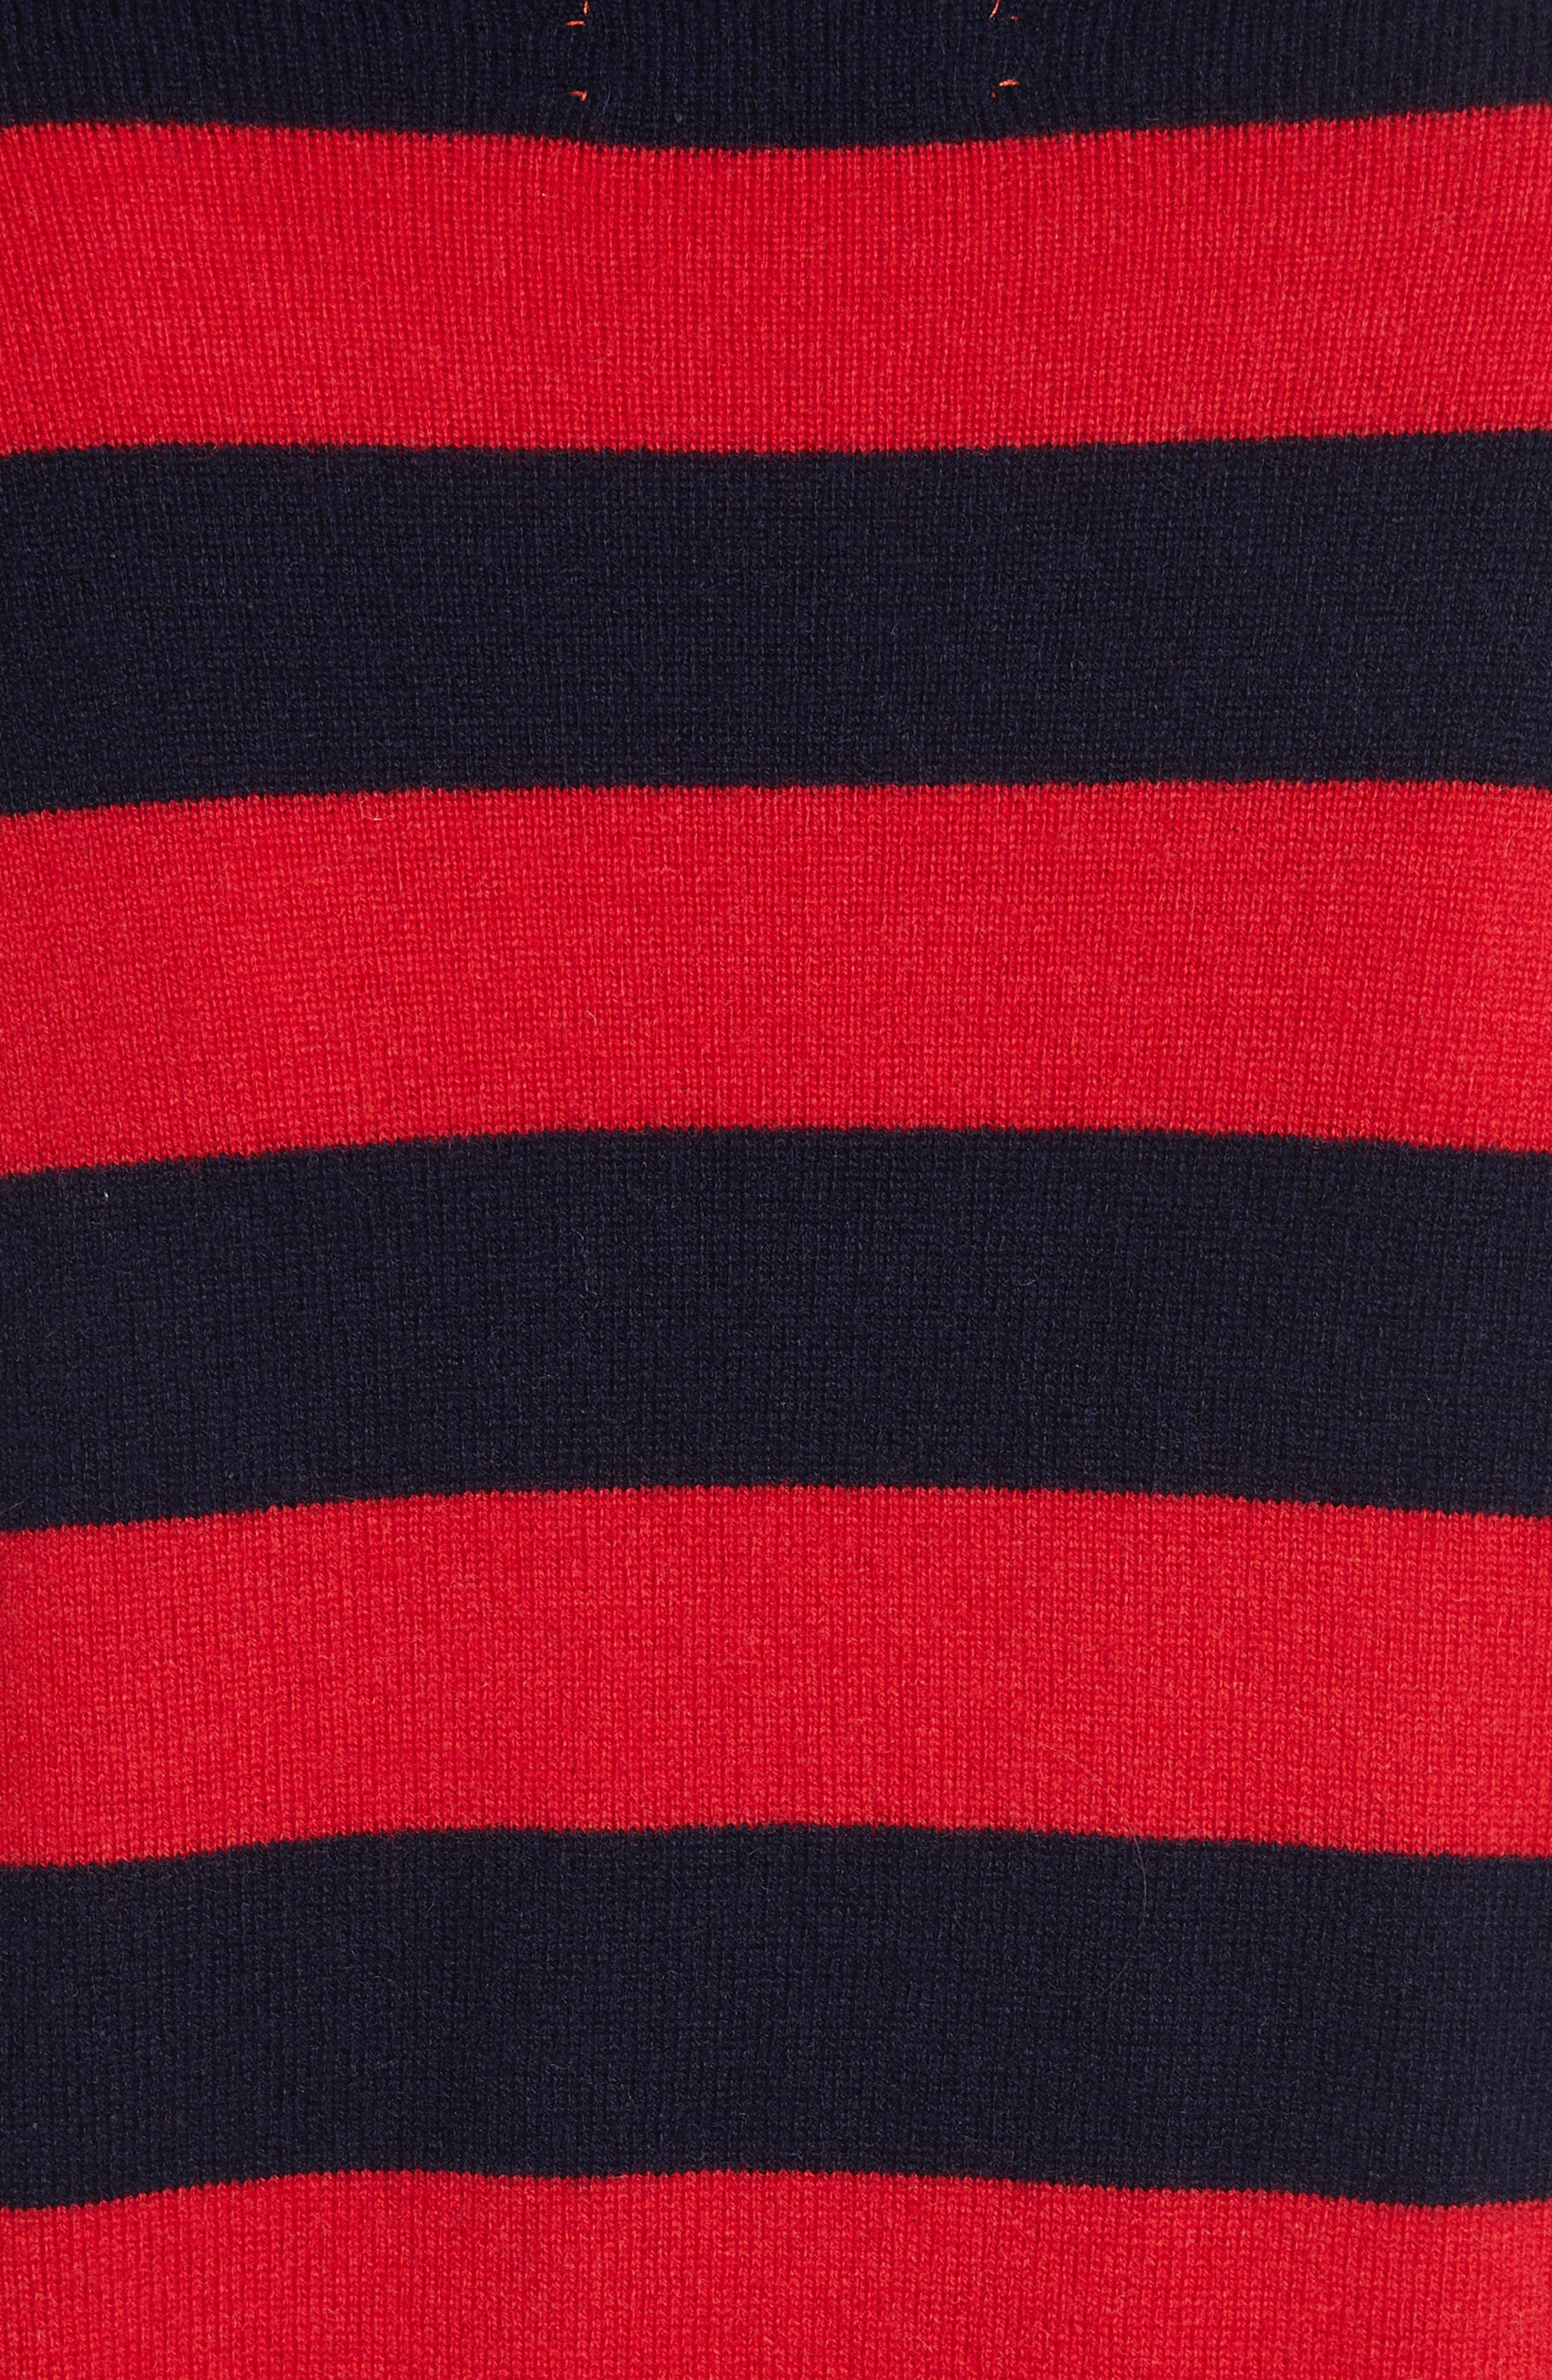 CHINTI & PARKER Navy Pop Stripe Cashmere Sweater,                             Alternate thumbnail 5, color,                             680